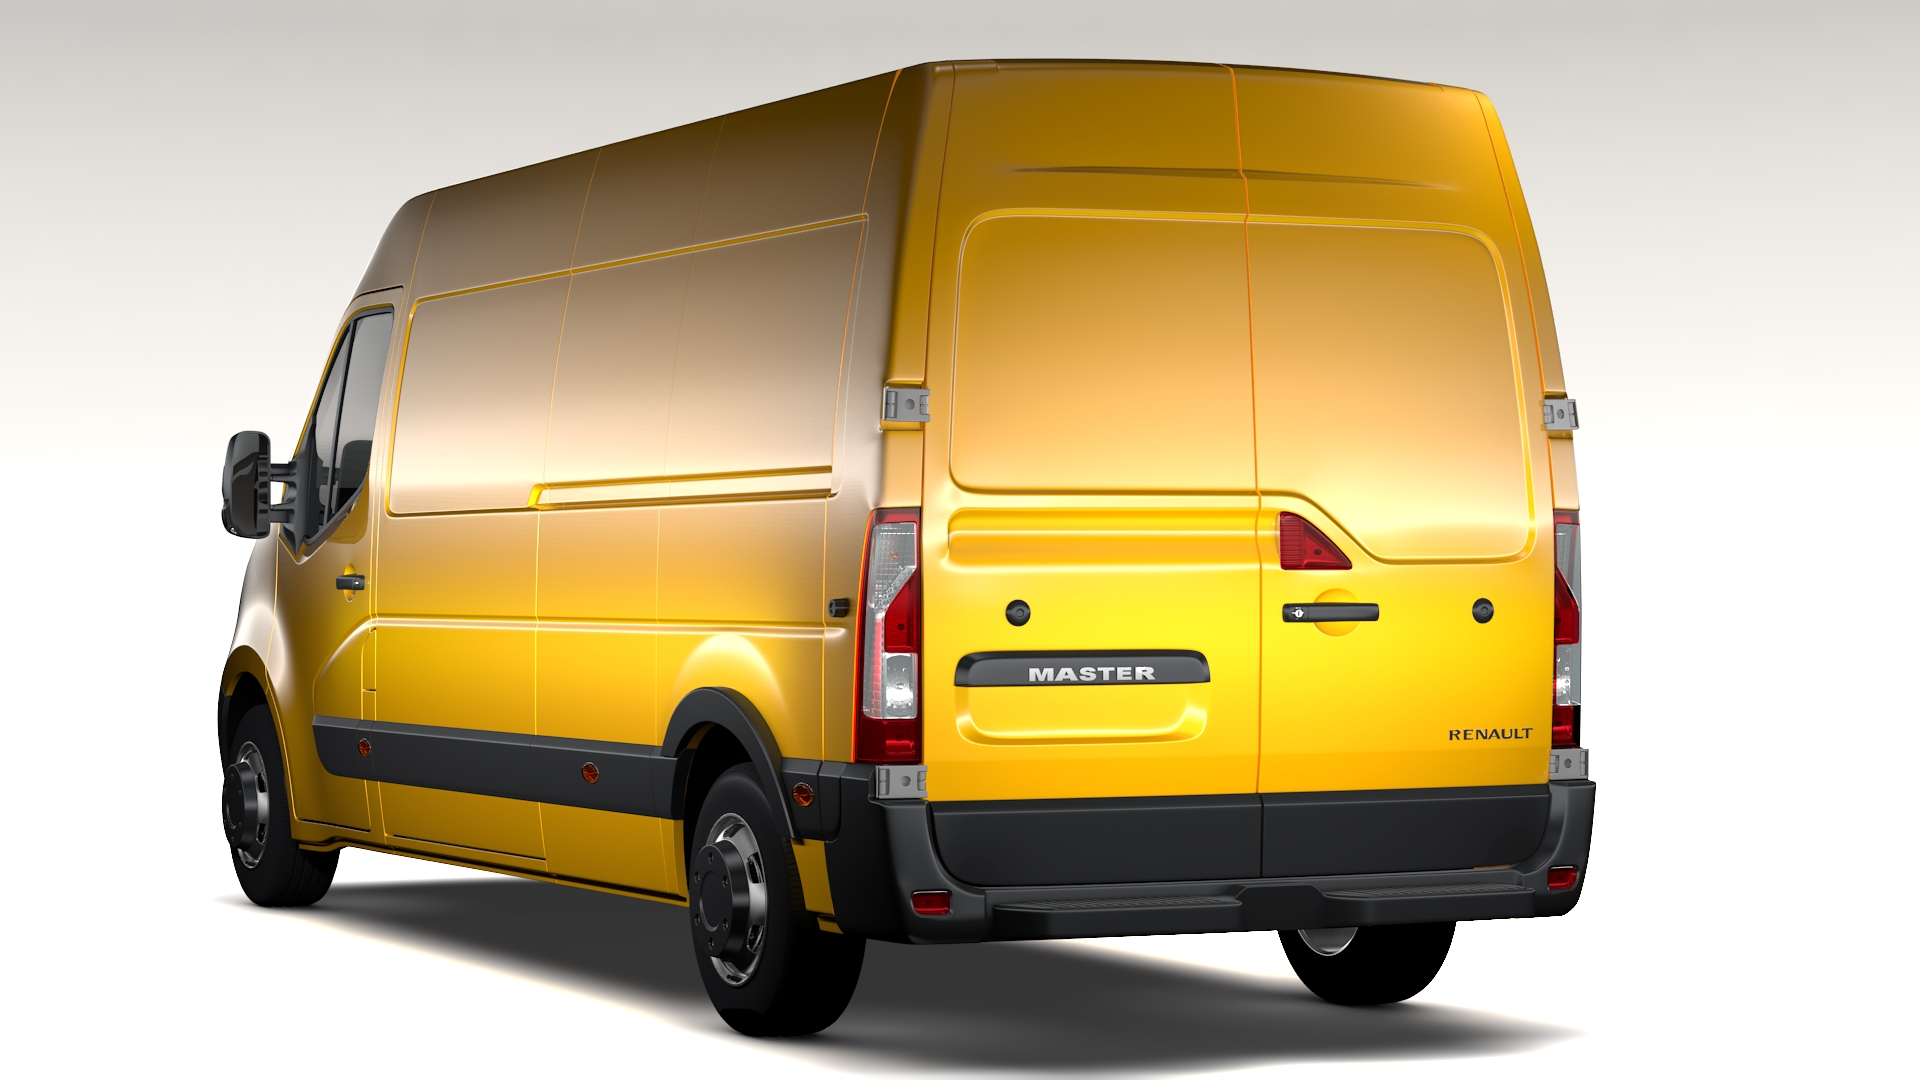 renault master l3h2 van 2010 3d model buy renault master l3h2 van 2010 3d model flatpyramid. Black Bedroom Furniture Sets. Home Design Ideas